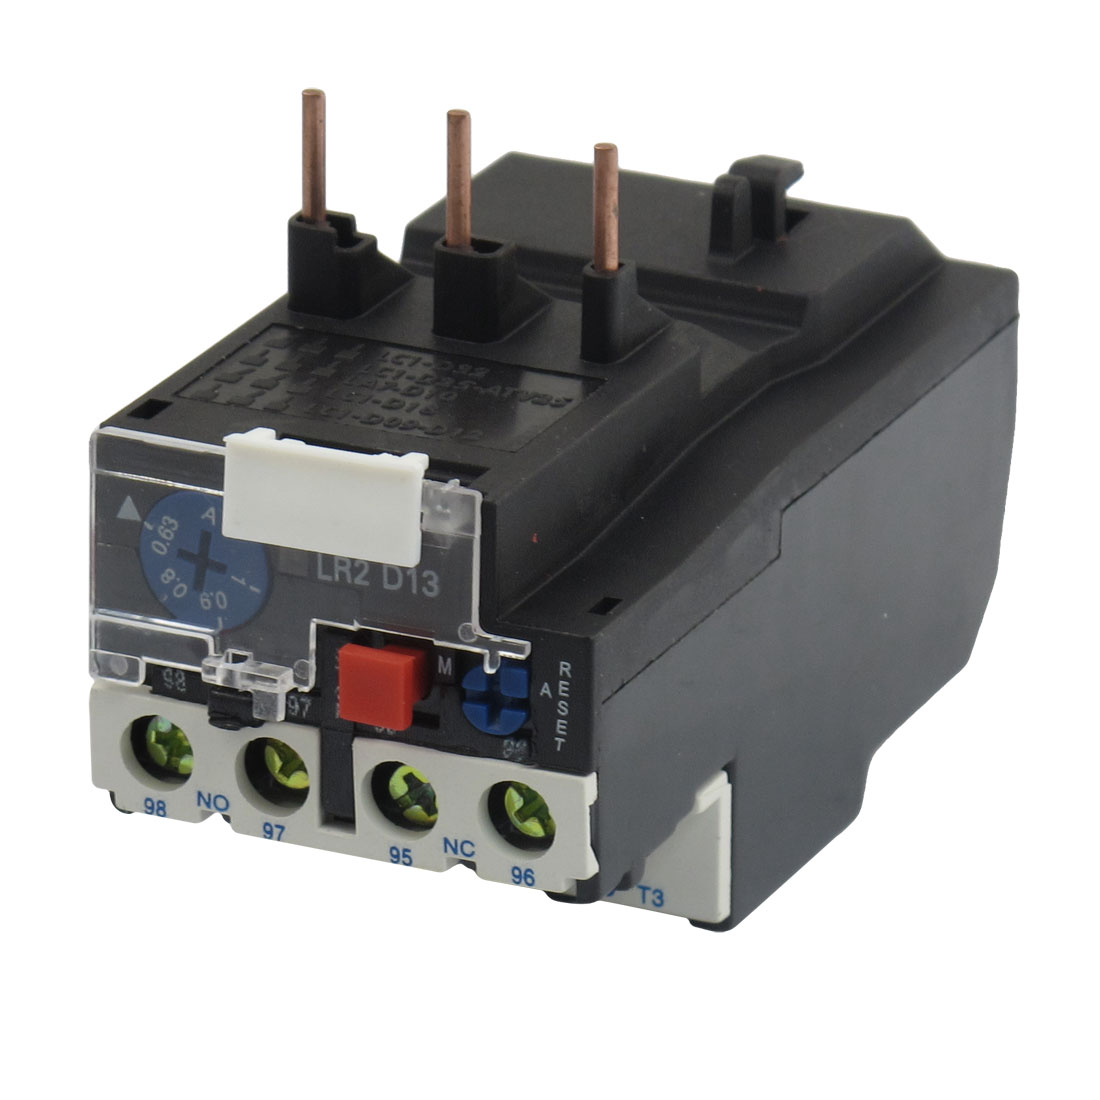 JR28-13 1A 3 Pole 0.63-1A Adjustable Motor Protective Thermal Overload Relays